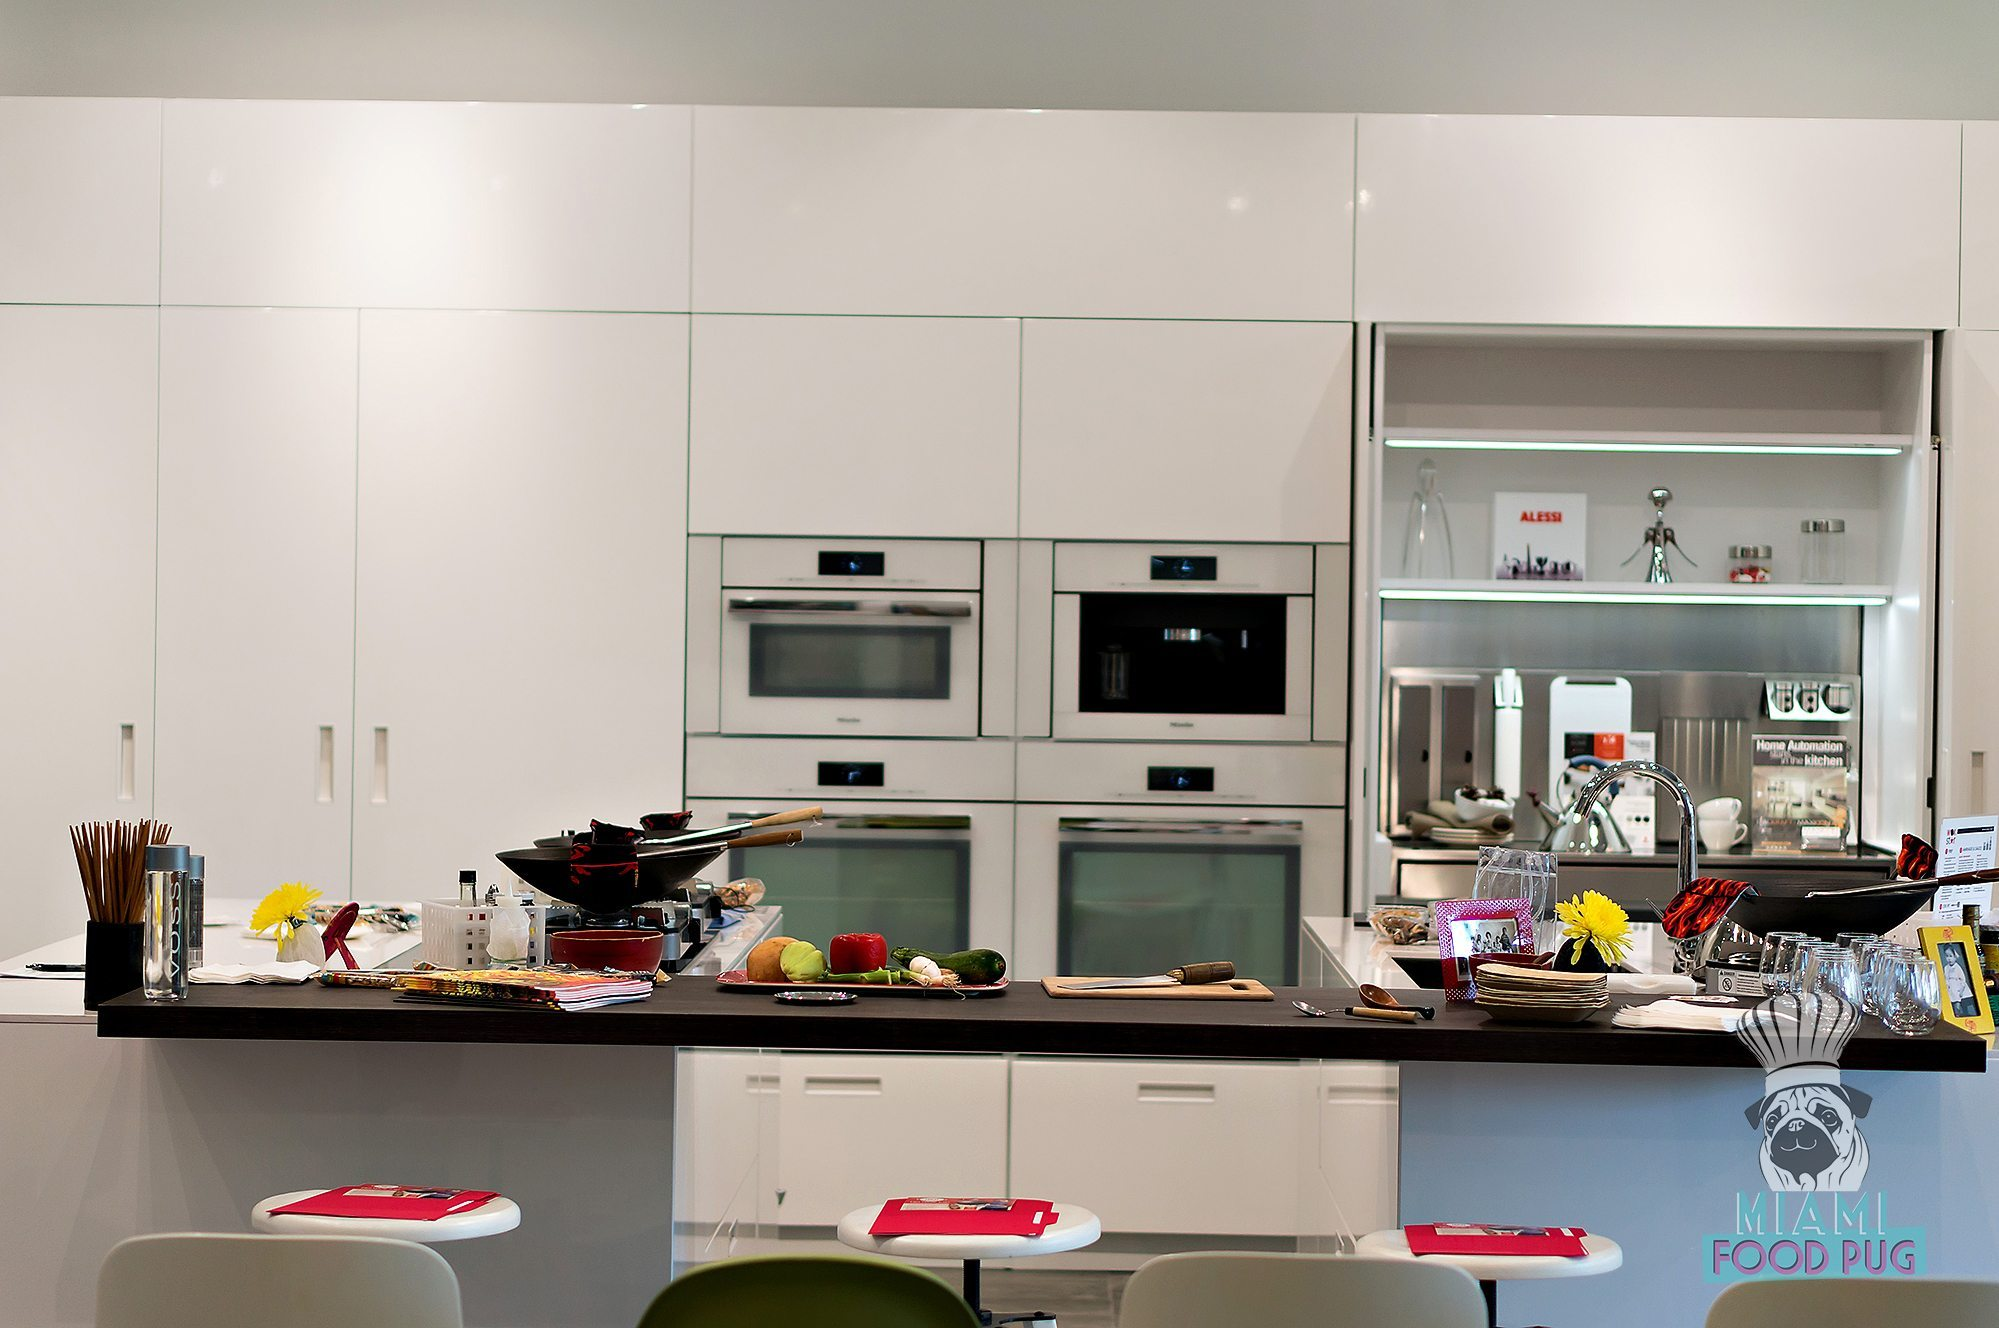 star kitchen space installs a first class kitchen fit for a 5